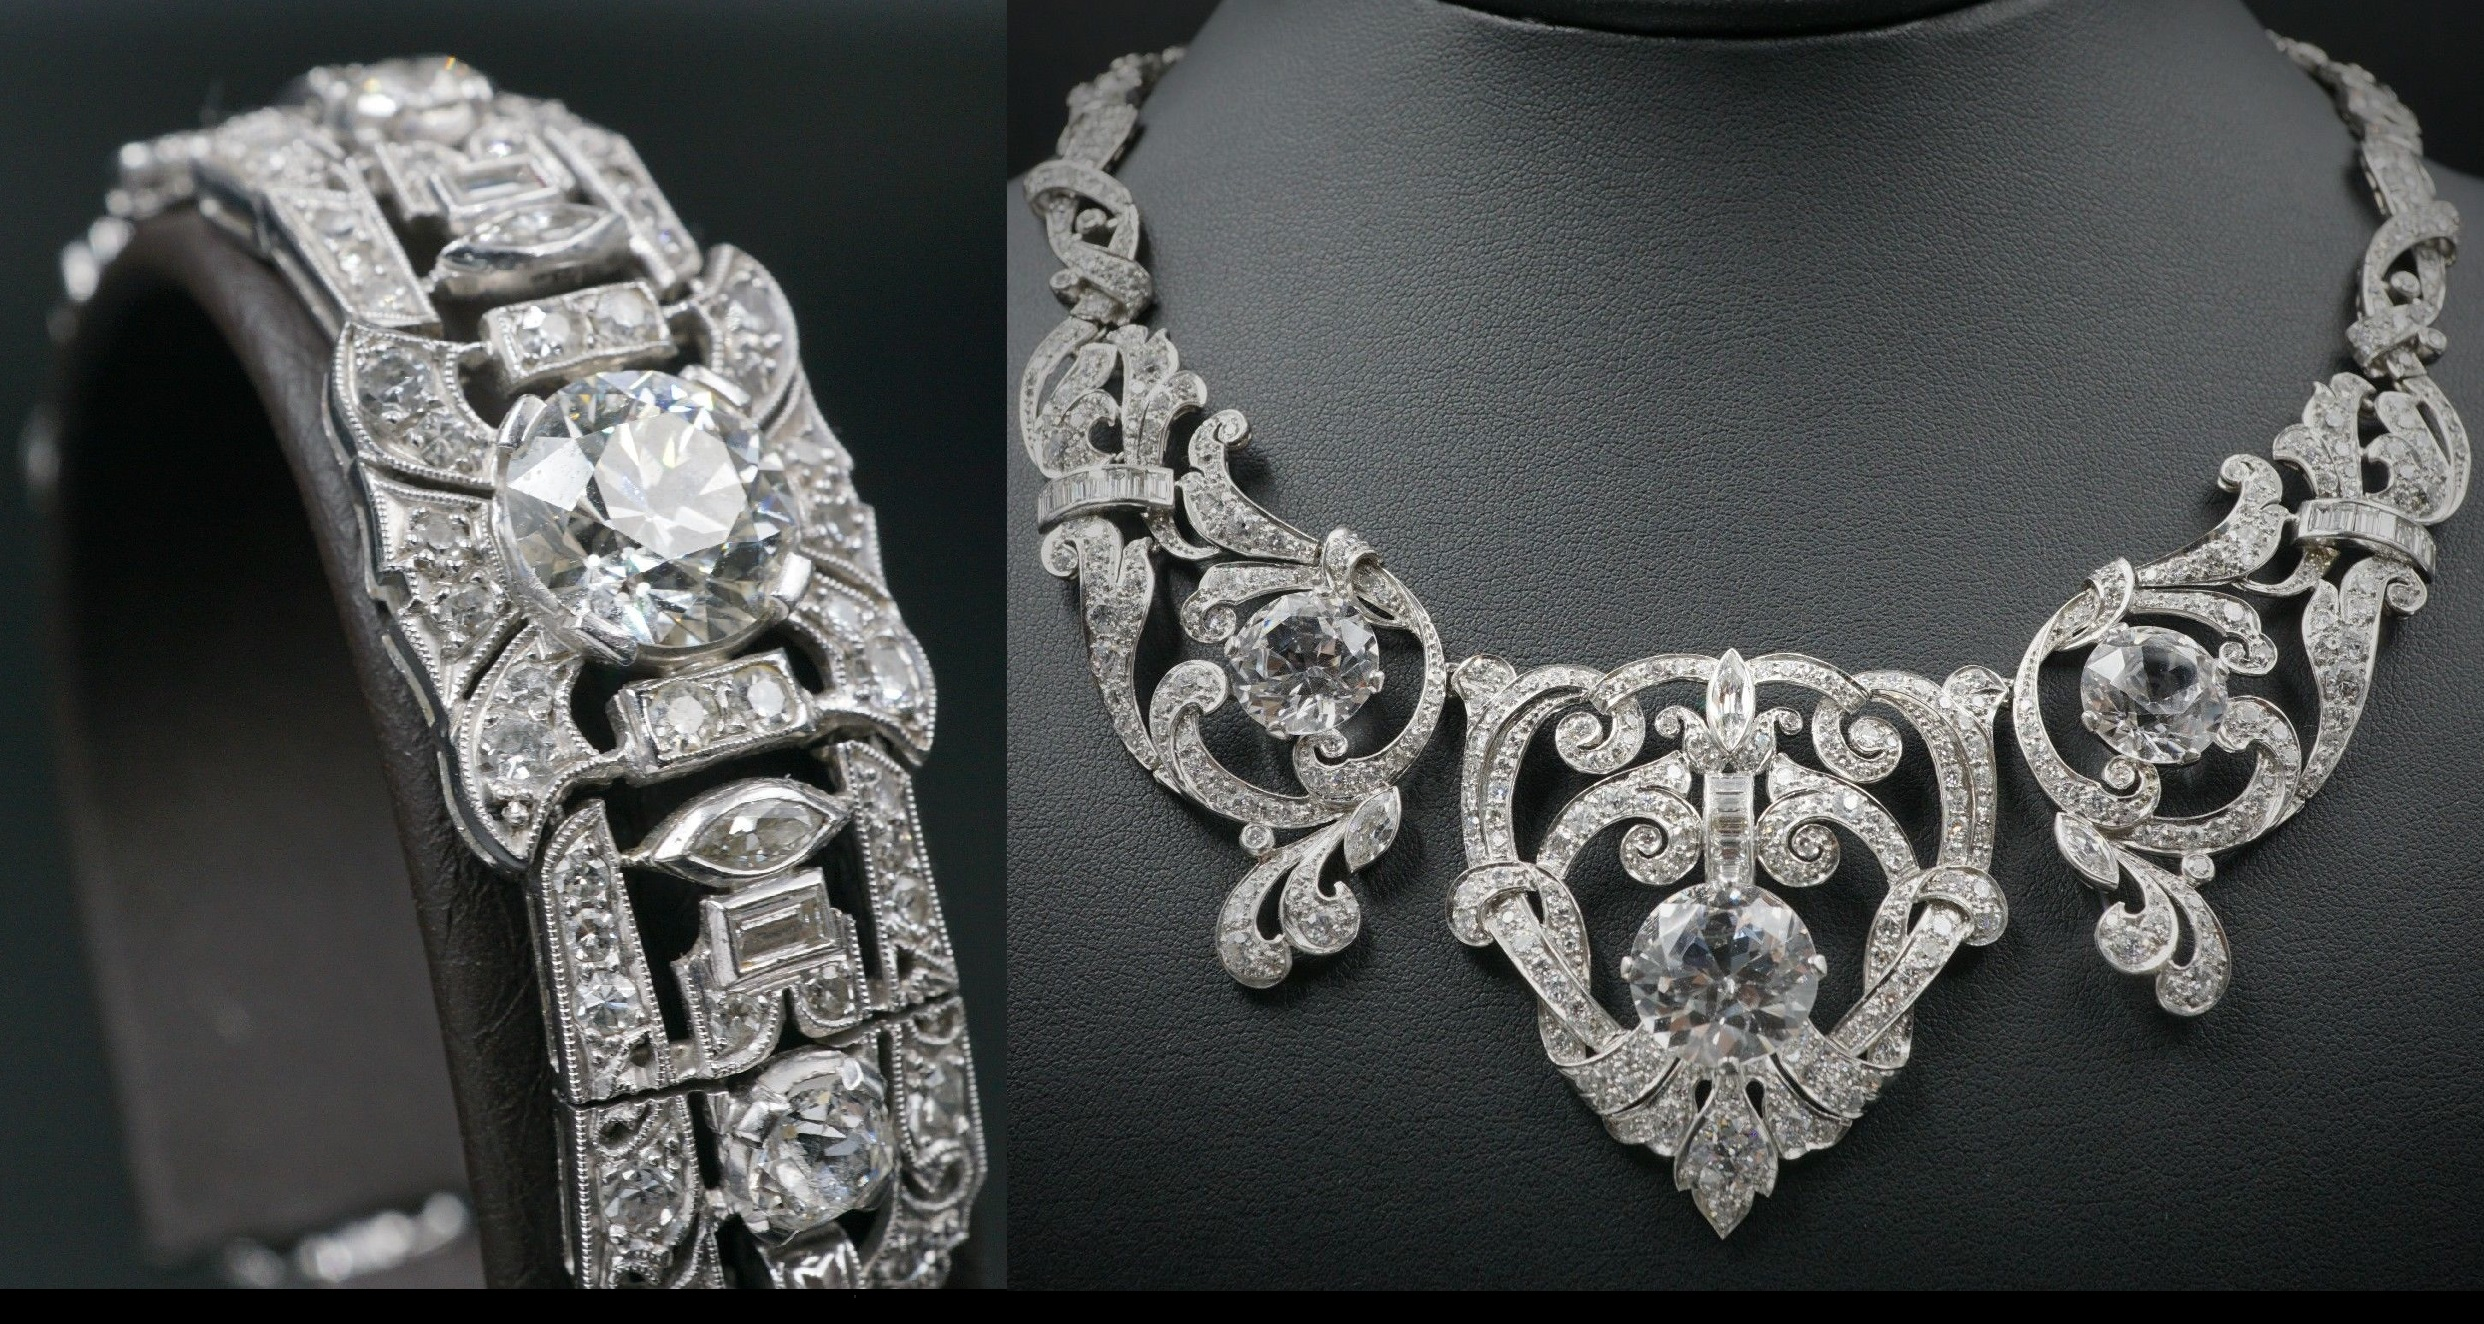 Mae West Owned Edwardian Platinum 23ct Diamond Necklace Bracelet Suite